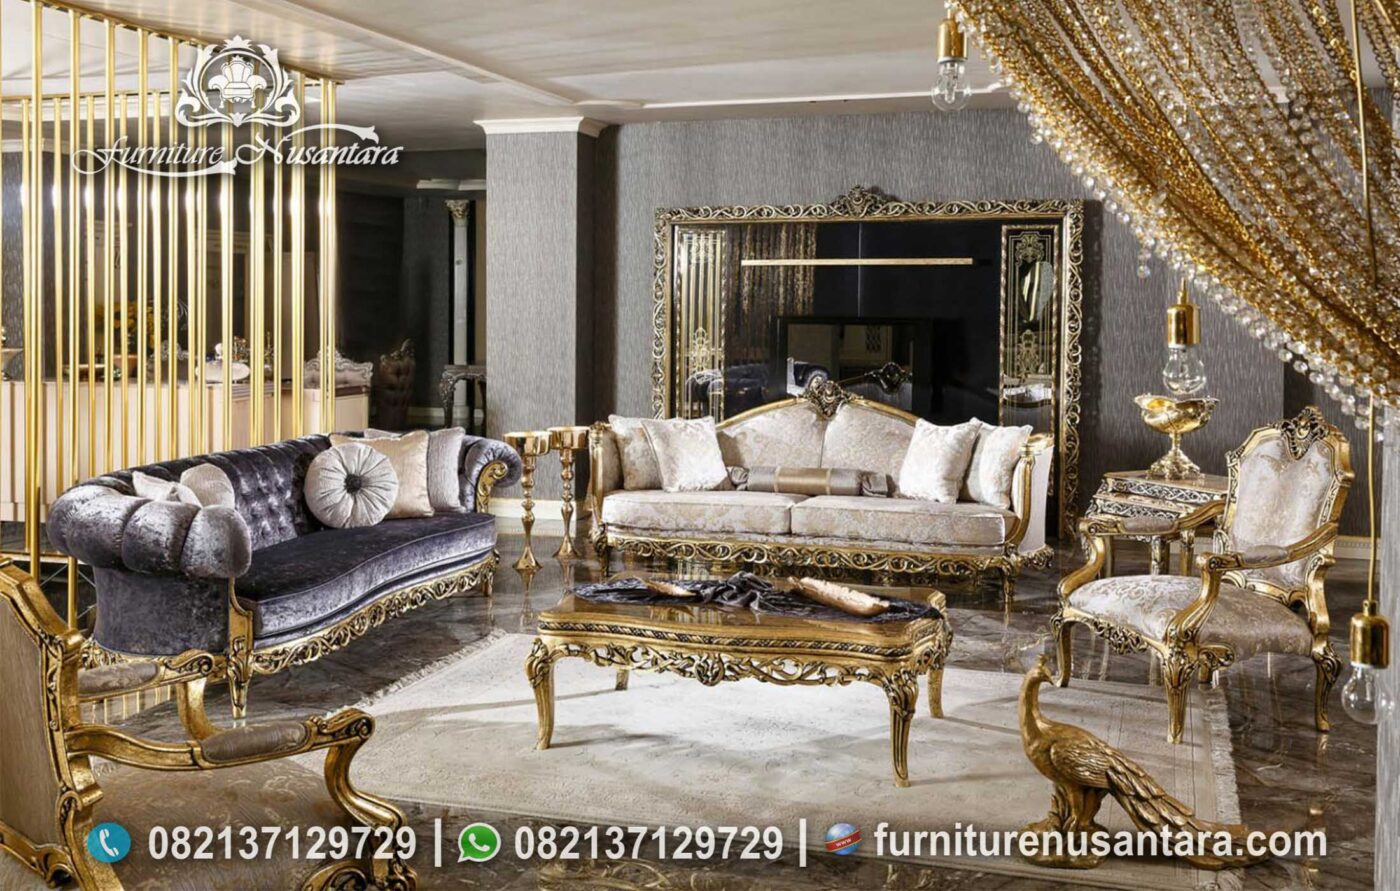 Sofa Luxury Mewah Terbaru ST-44,, Furniture Nusantara